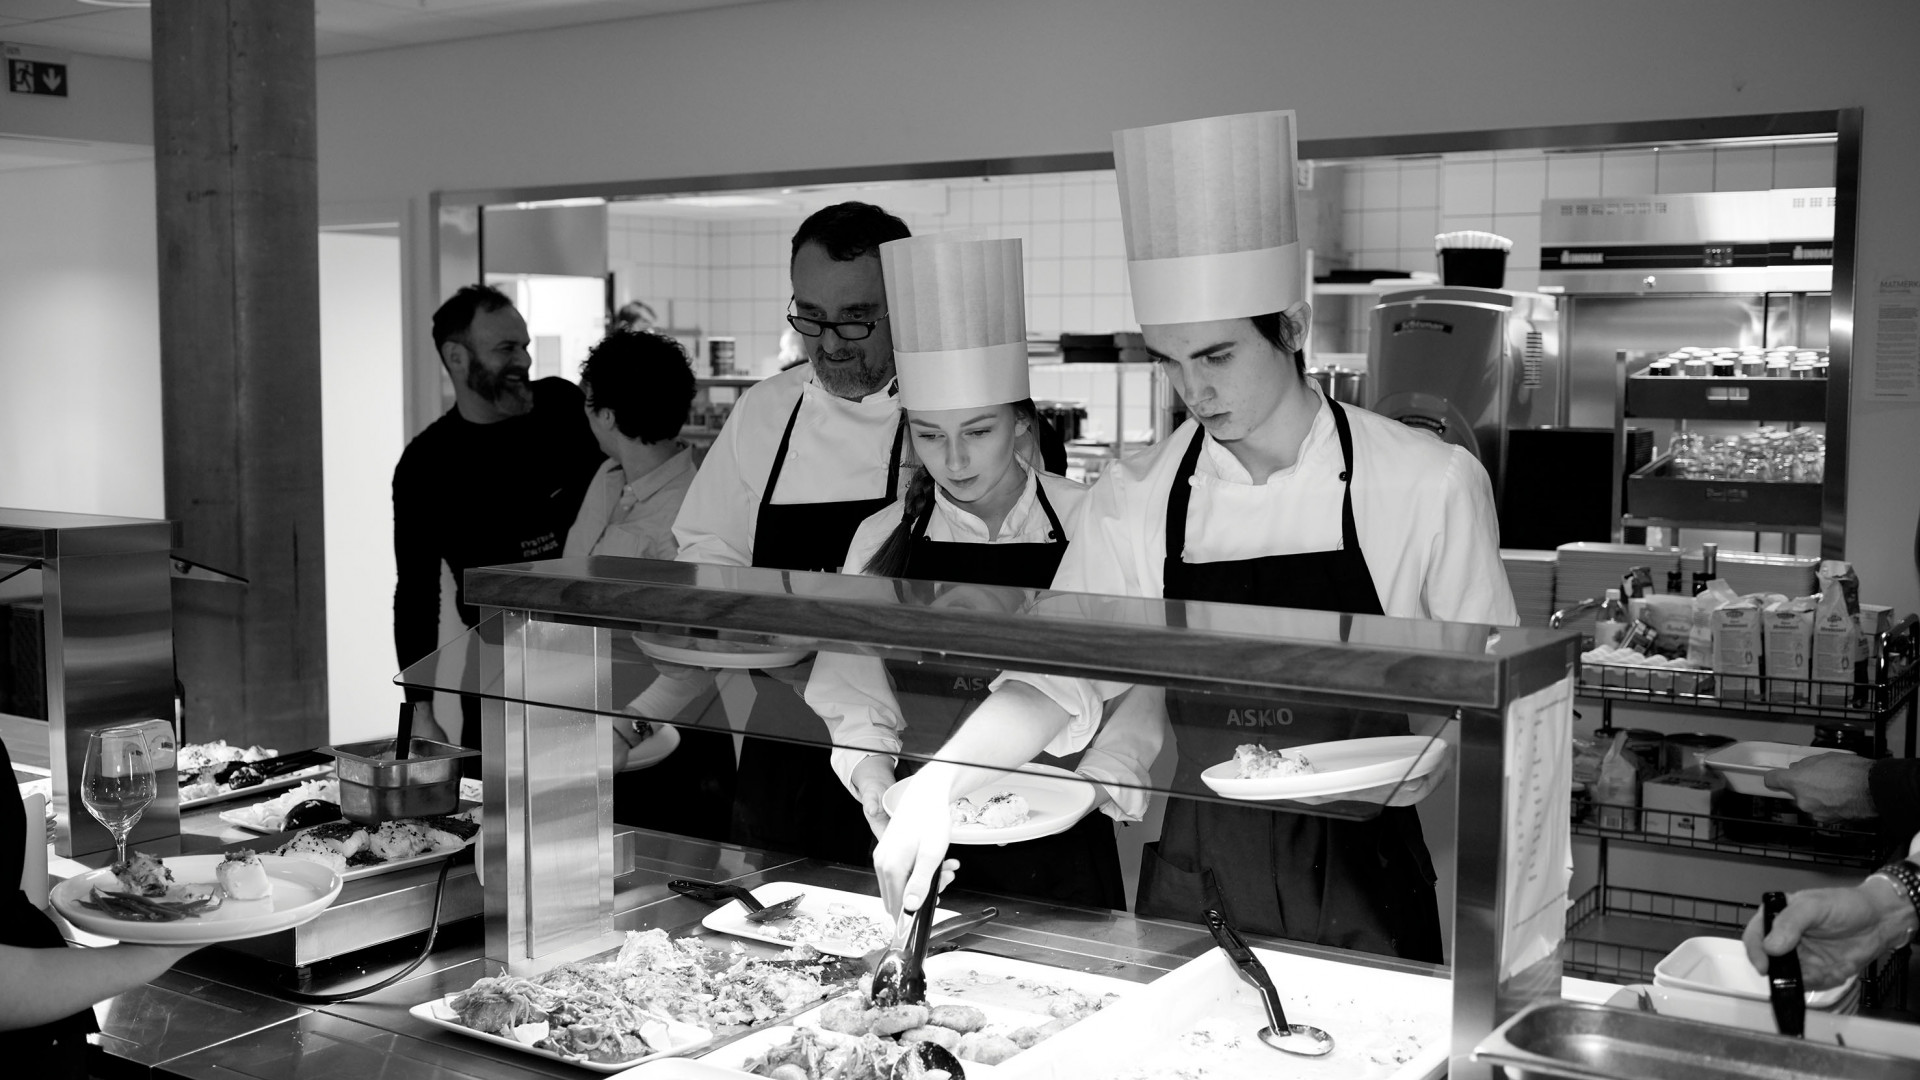 Chefs and students cooking at the Norwegian Seafood Council's offices